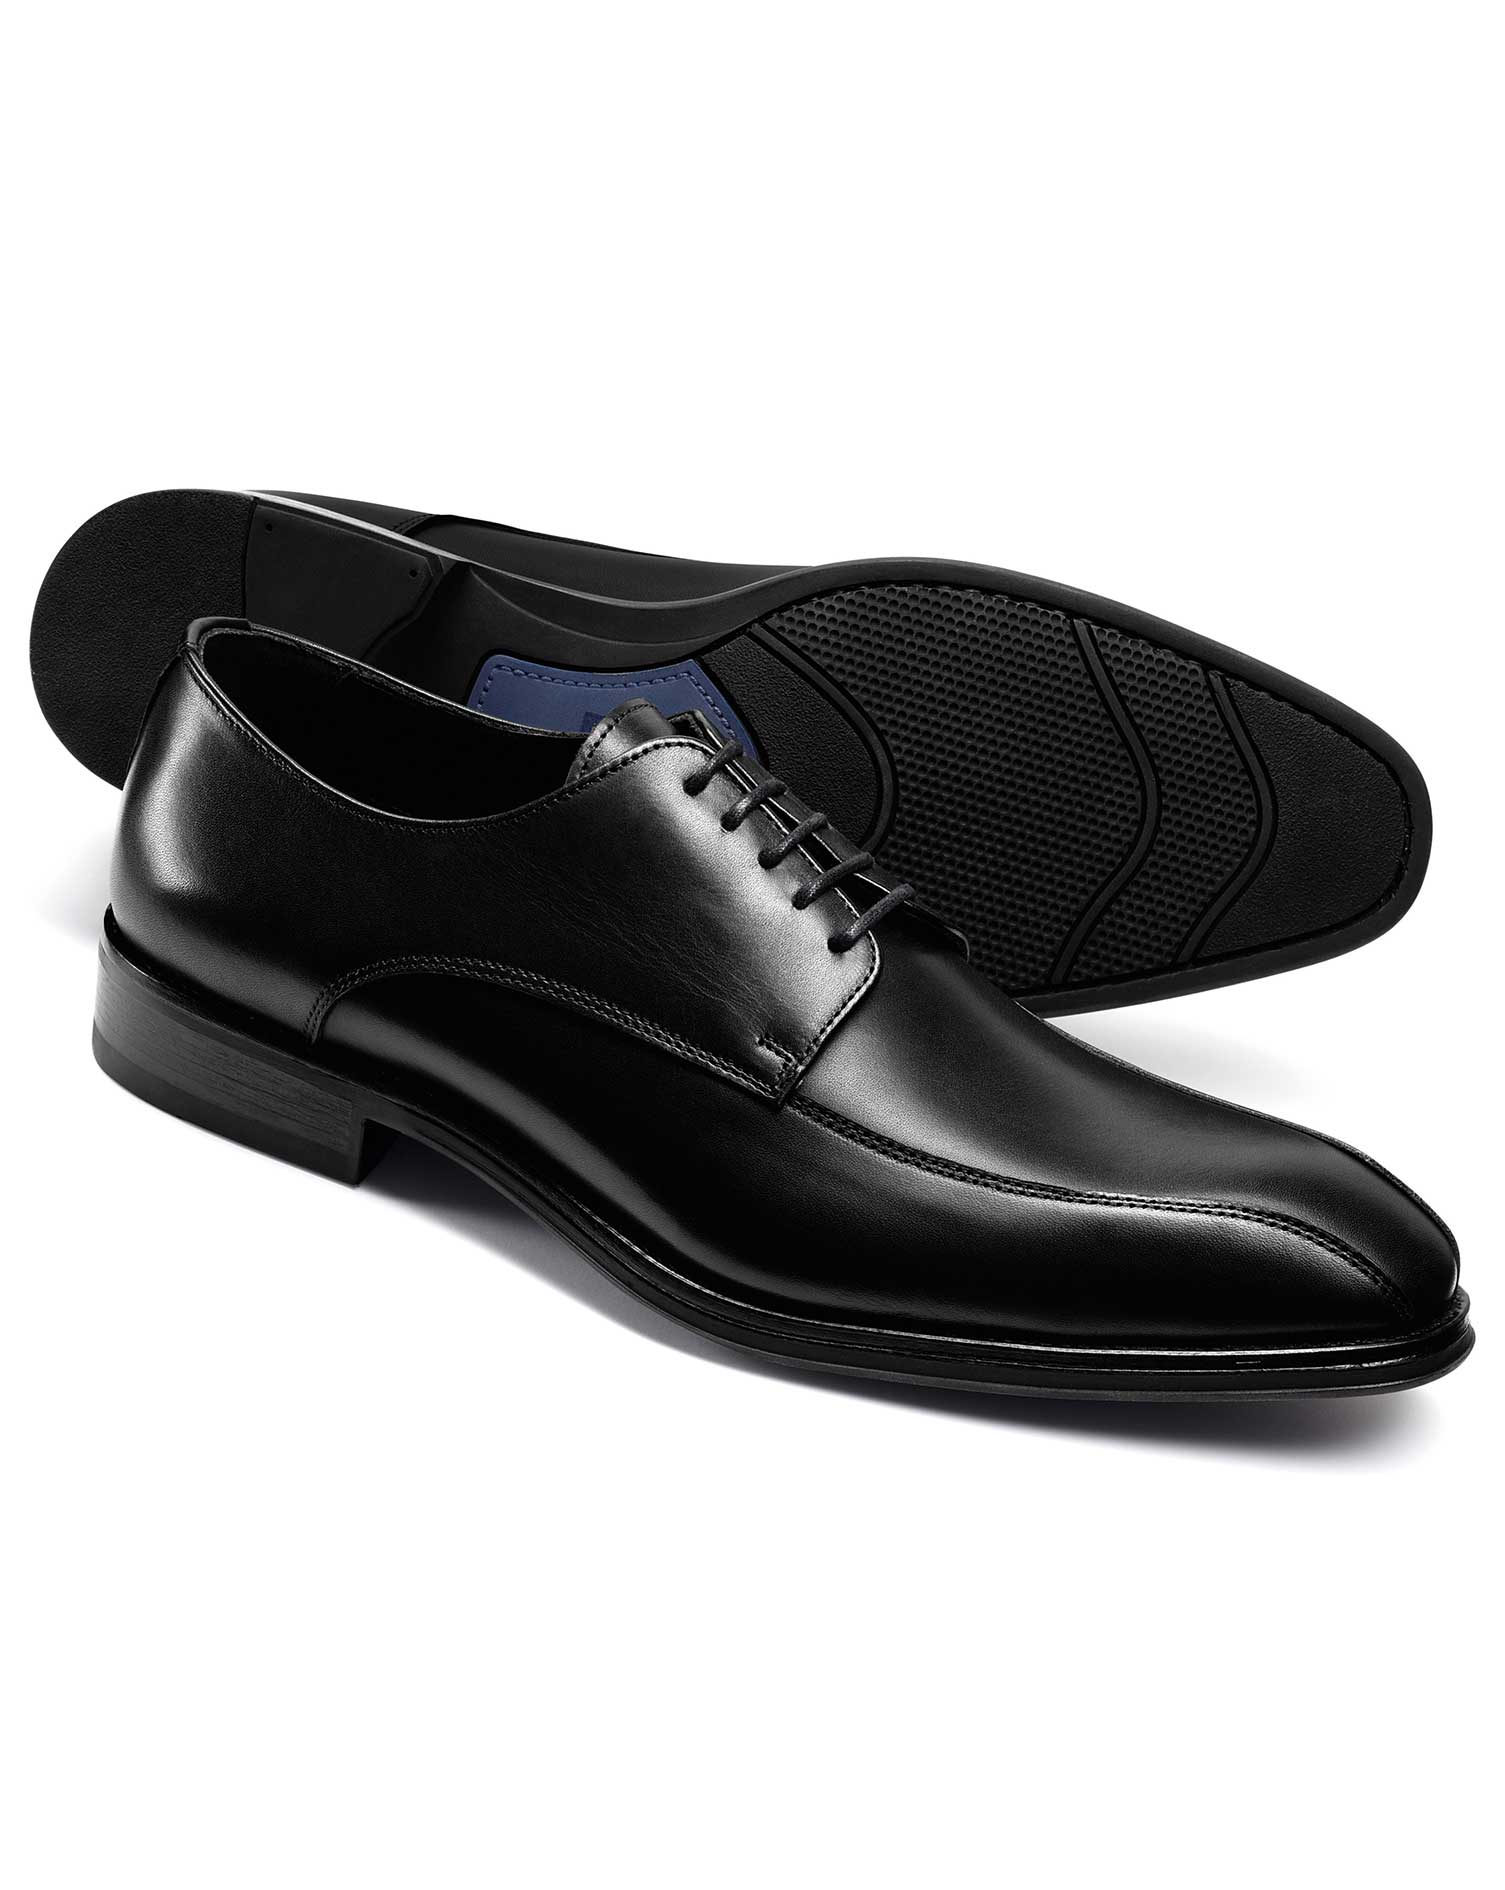 Black Performance Tramline Derby Size 8 R by Charles Tyrwhitt